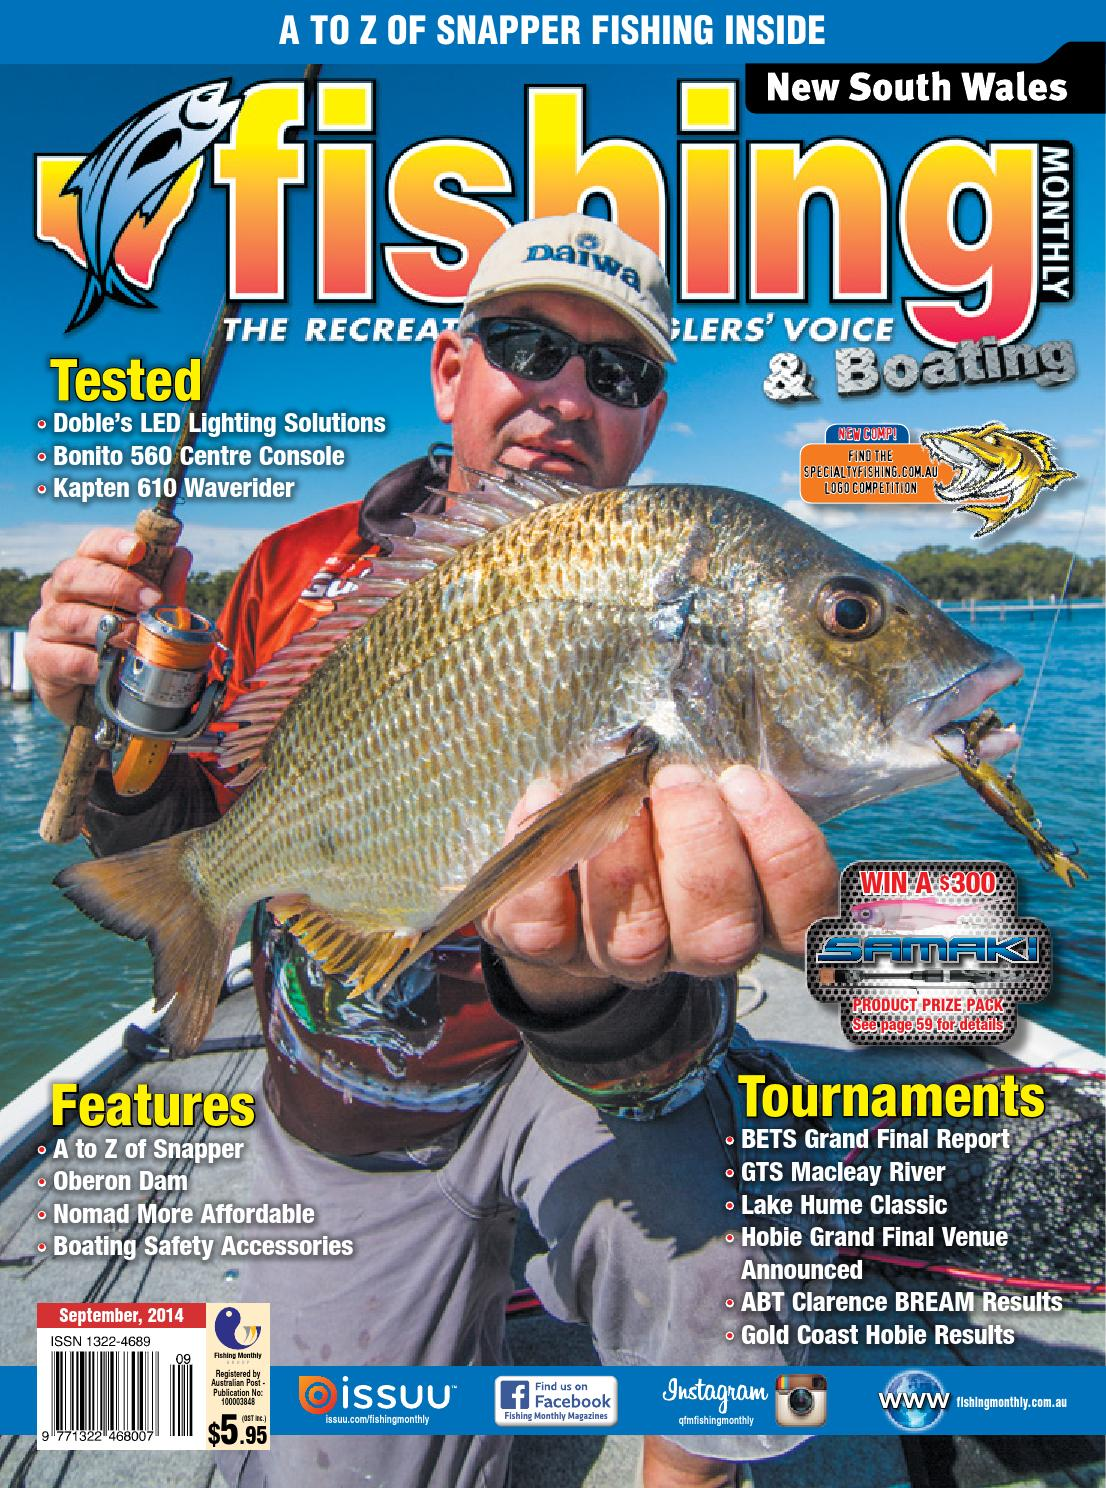 3344951762 New South Wales Fishing Monthly - September 2014 by Fishing Monthly - issuu